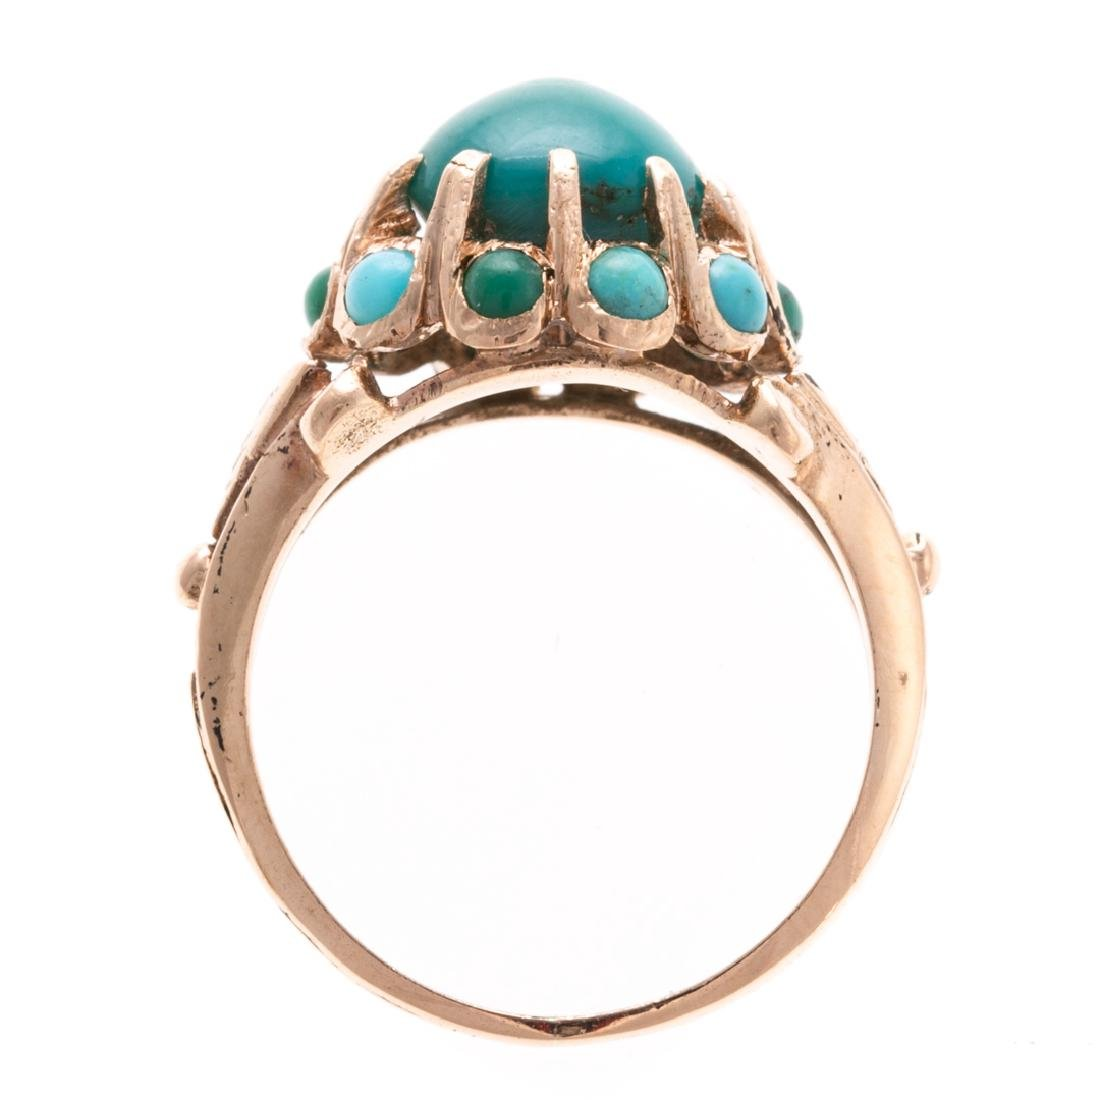 A Lady's Turquoise Ring in 14K Gold - 3